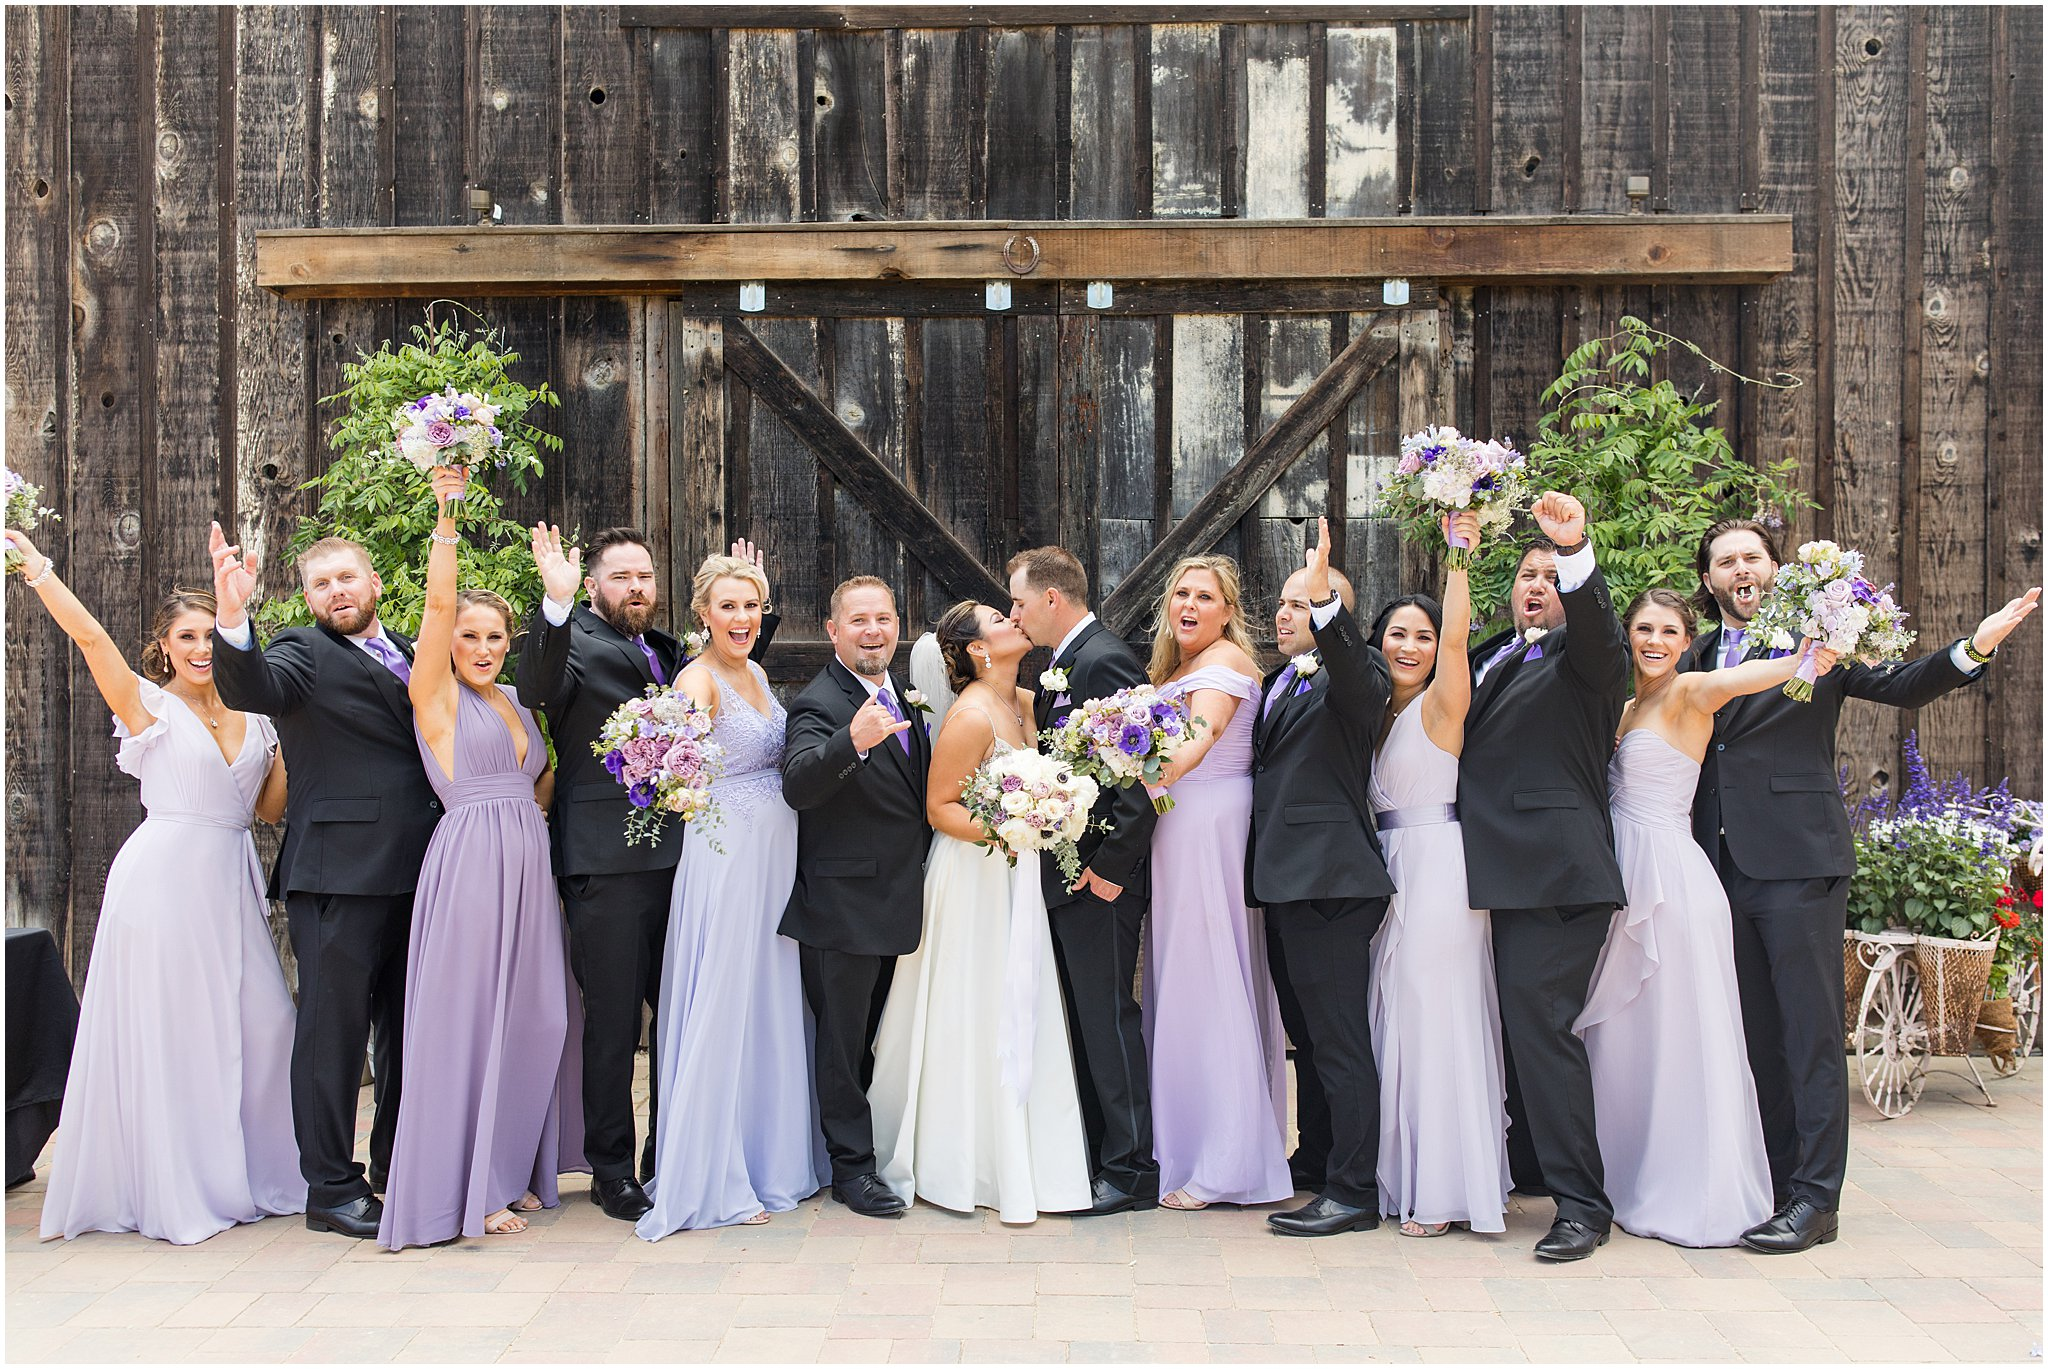 2019 wedding san juan bautista hacienda de leal vineyards bay area wedding photographer_0036.jpg